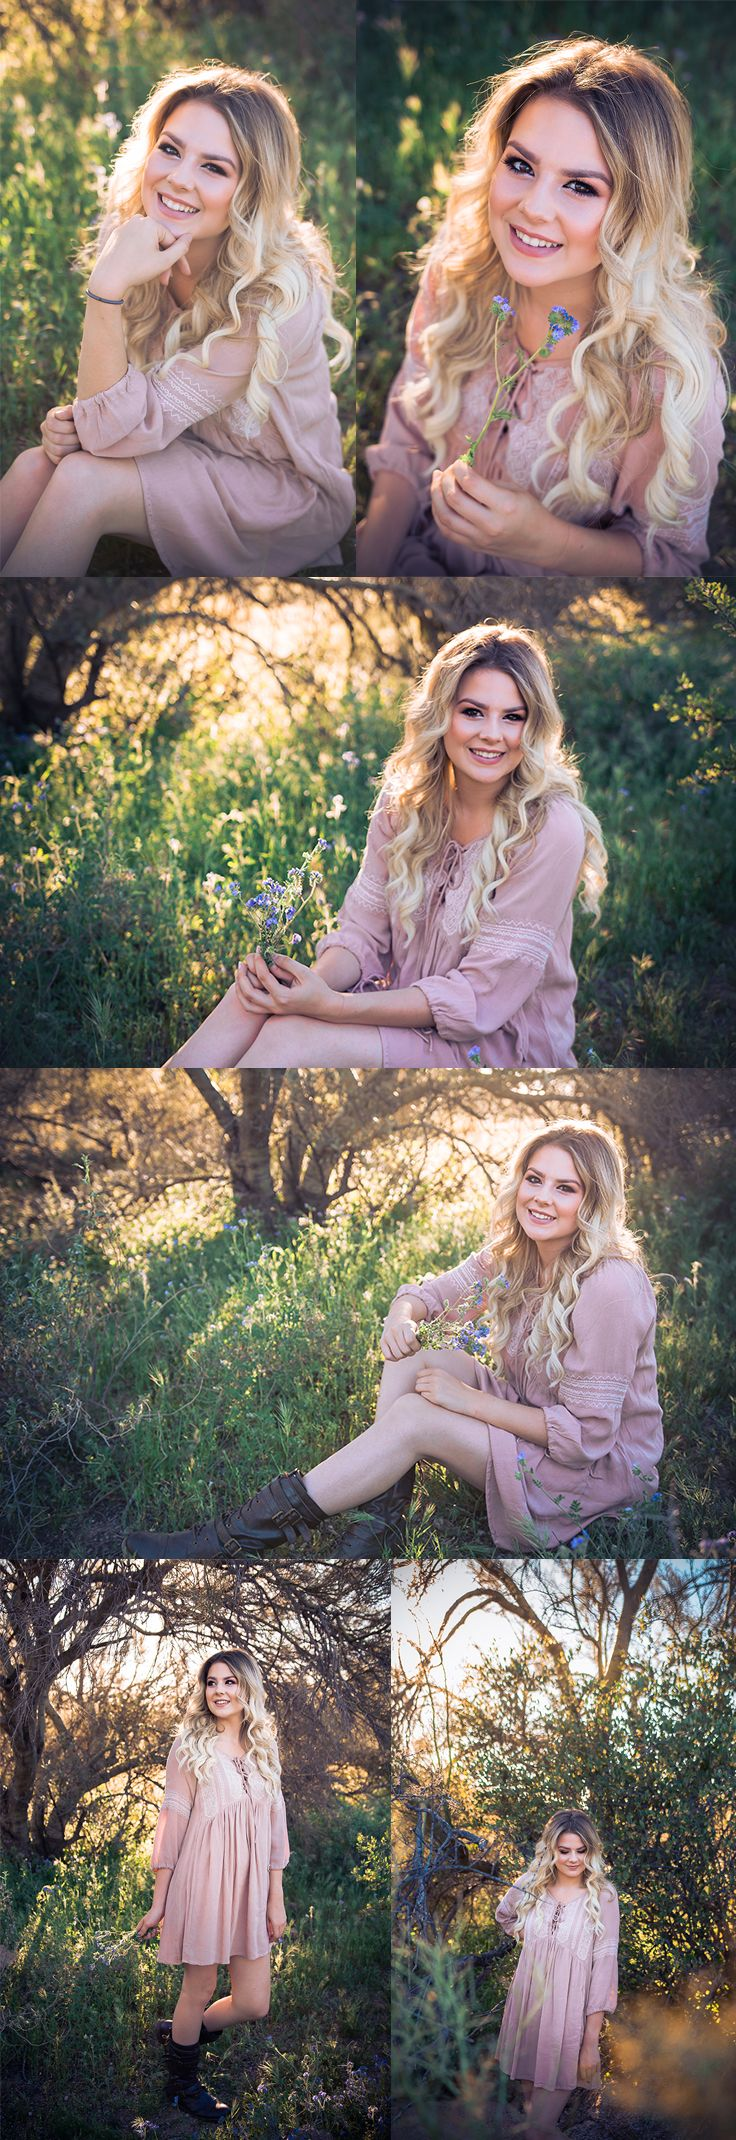 Senior Pictures, Senior girl, Desert Senior Pictures, Senior Portraits - Sunshyne Pix by Sarah Robinson http://www.sunshynepix.com/Blog/Ashlee-Graduating-Gilbert-HighSchool